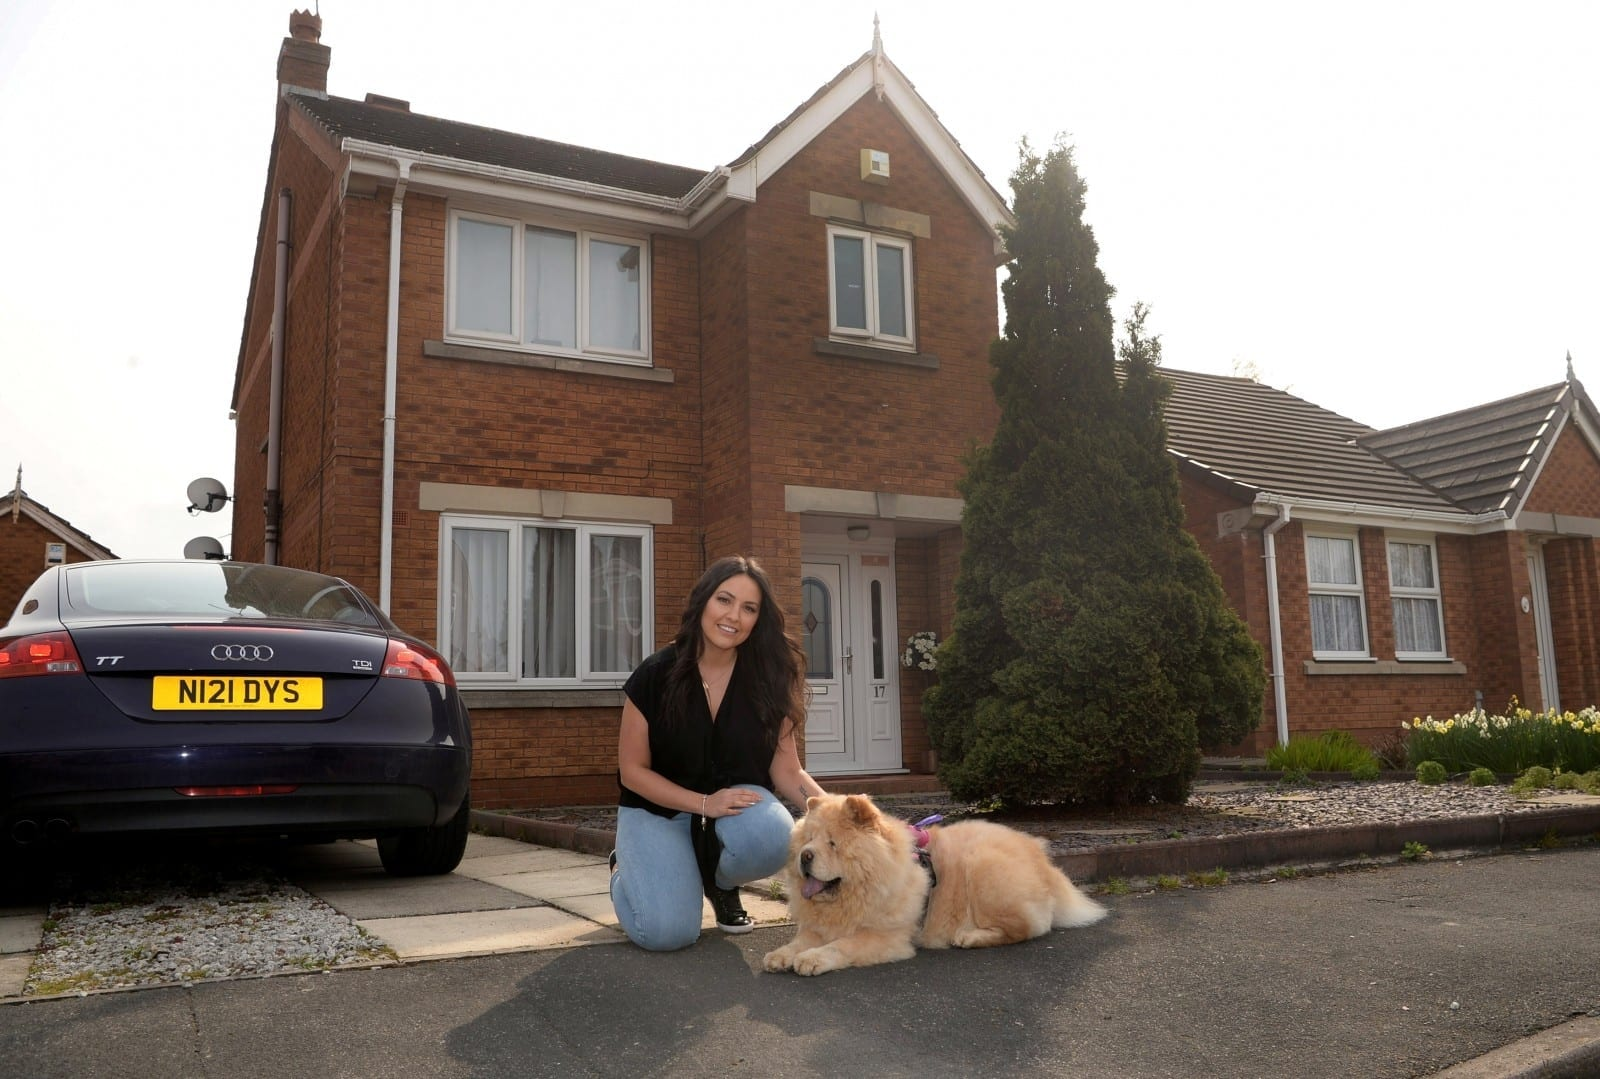 Woman Is Remortgaging Her Home To Raise £20K For Life-Saving Treatment – For Her DOG